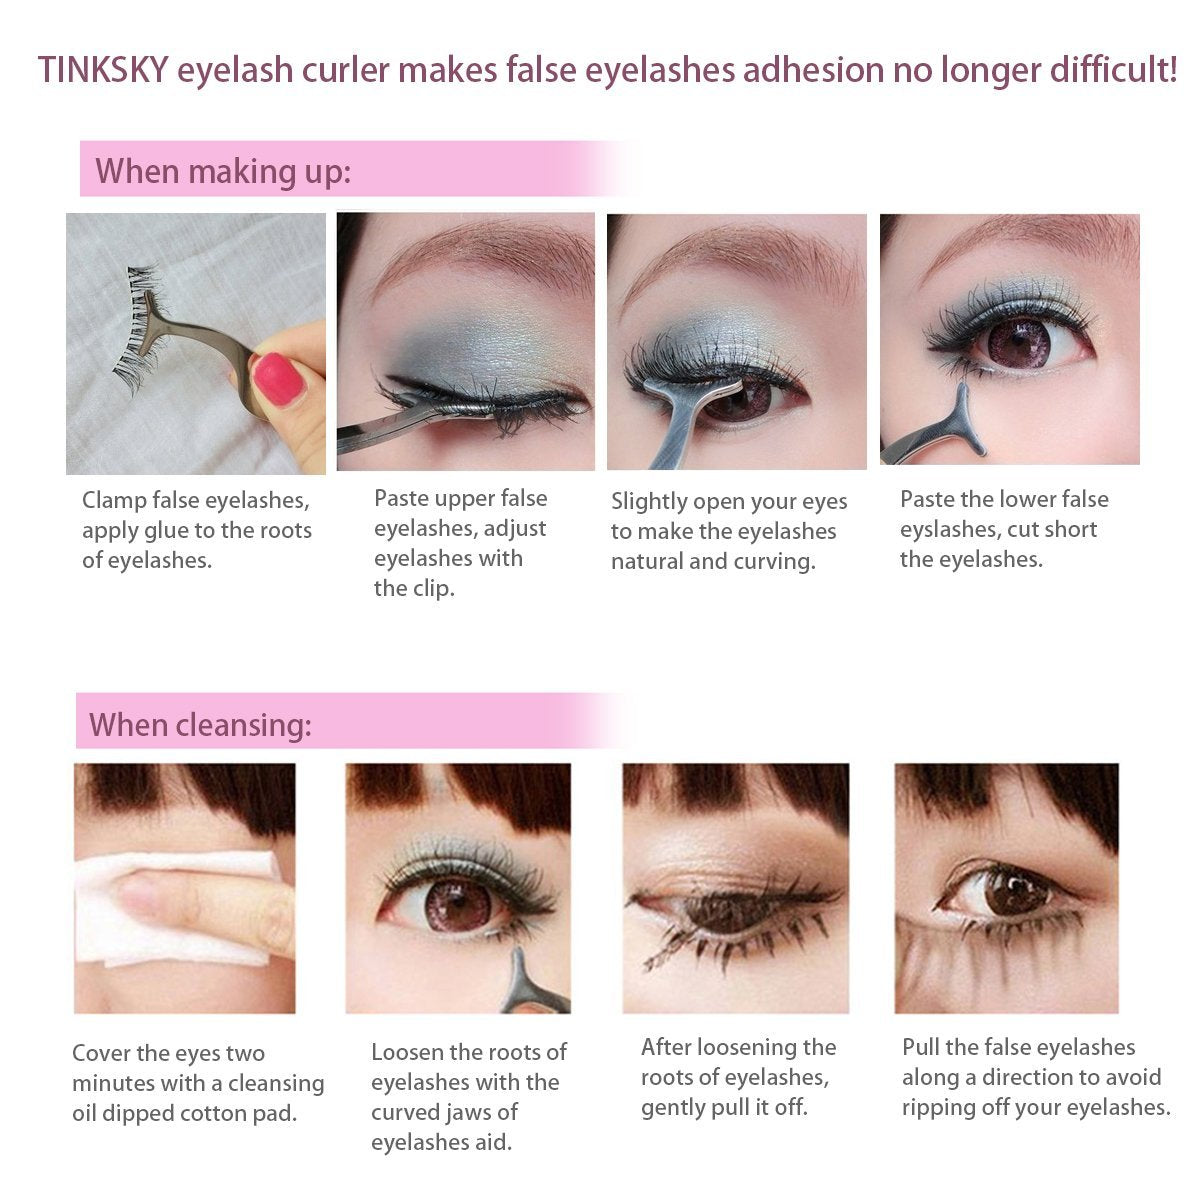 How to put on and remove false eyelashes